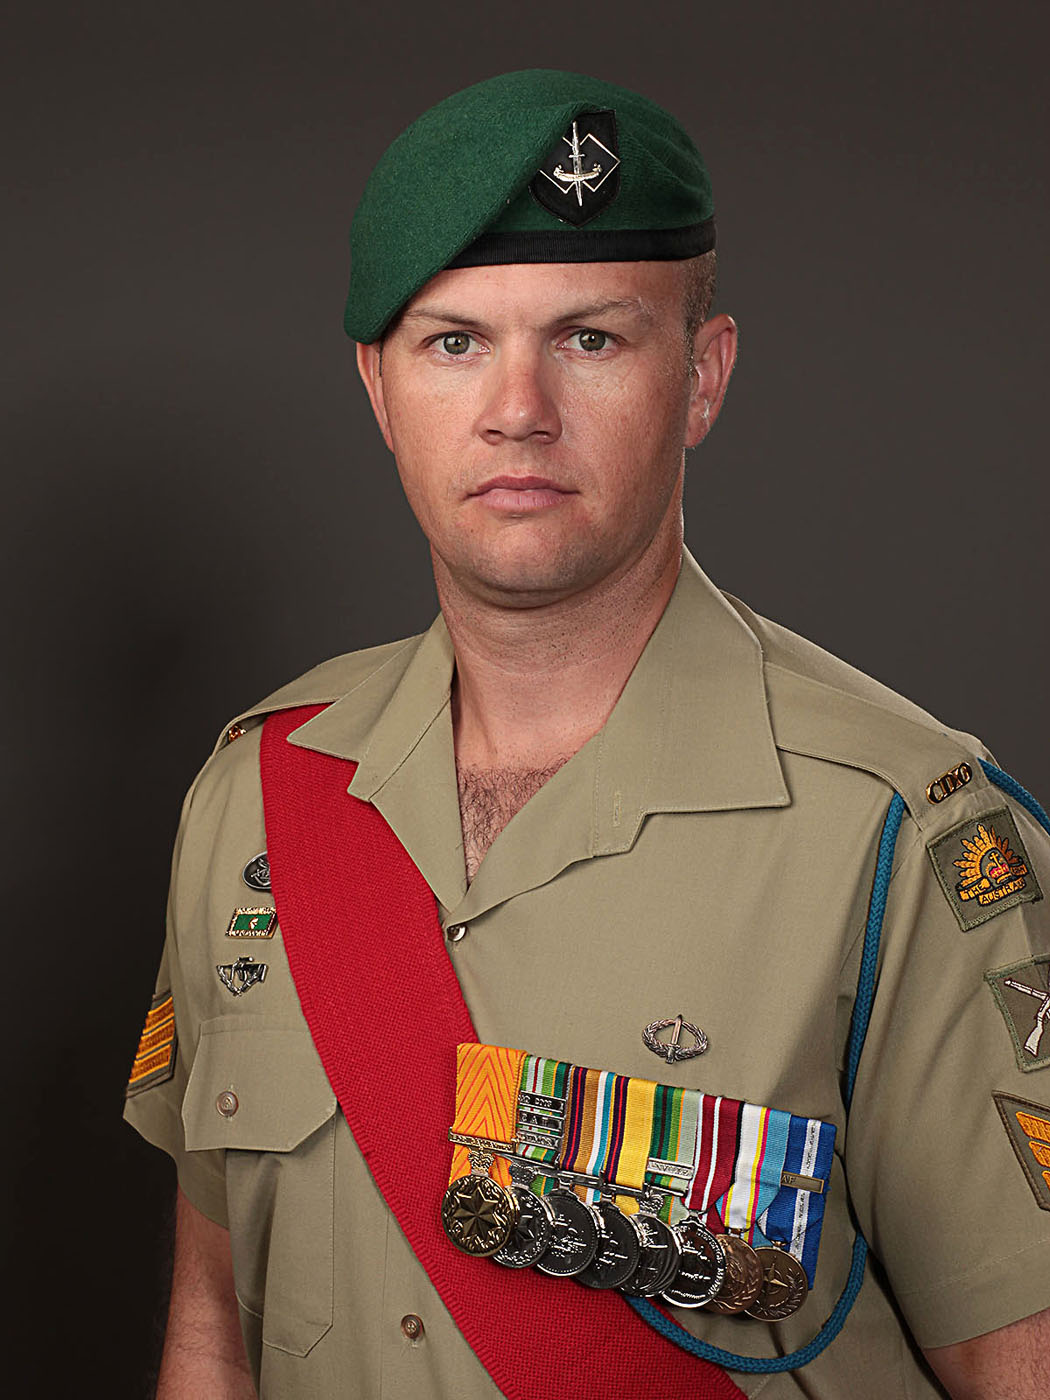 Australian Army Sergeant Brett Wood, 32, of Ferntree Gully, Victoria, assigned to the 2nd Commando Regiment, based in Sydney, New South Wales, died on May 23, 2011, in Helmand province, Afghanistan, after insurgents attacked him with an improvised explosive device. He is survived by his wife Elvi, his mother Allison, and his father David. Donations can be made in his name to the Commando Welfare Trust.